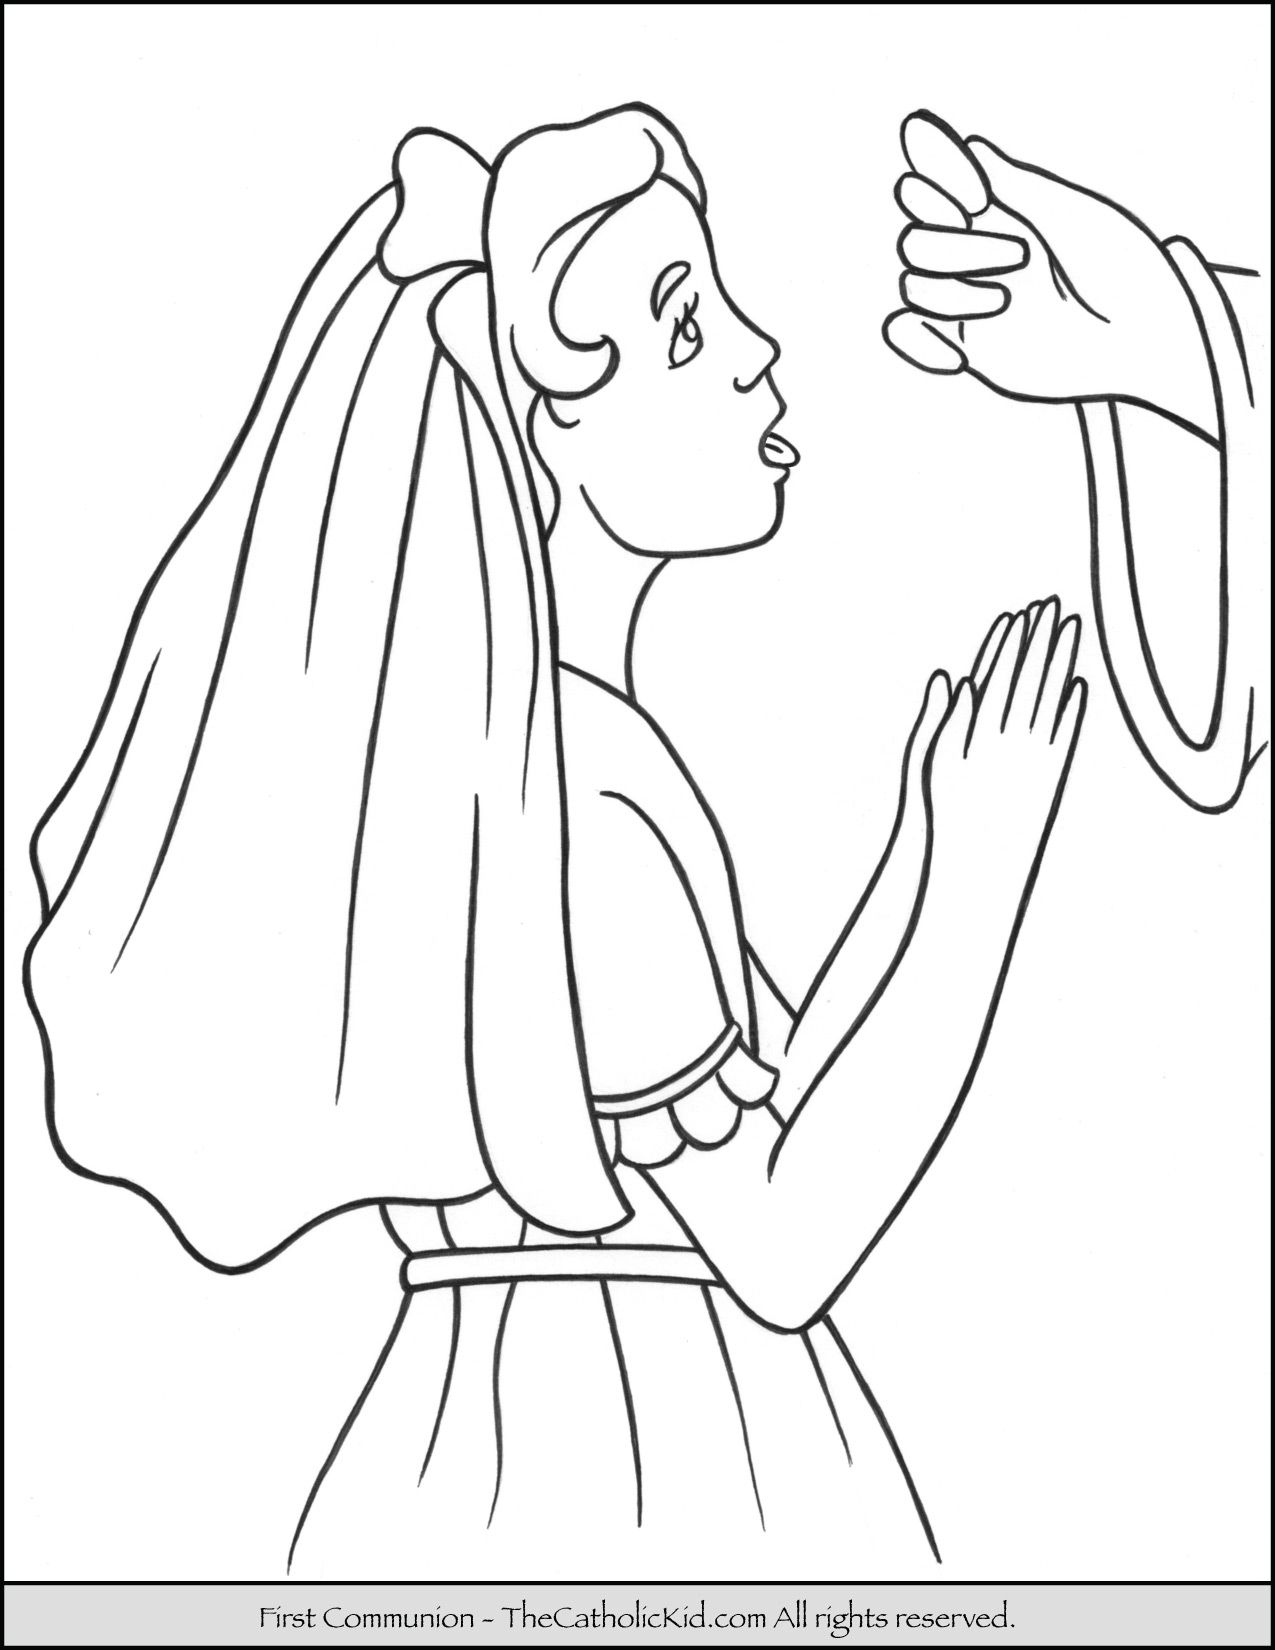 First Communion Girl Coloring Page Thecatholickid Com Coloring